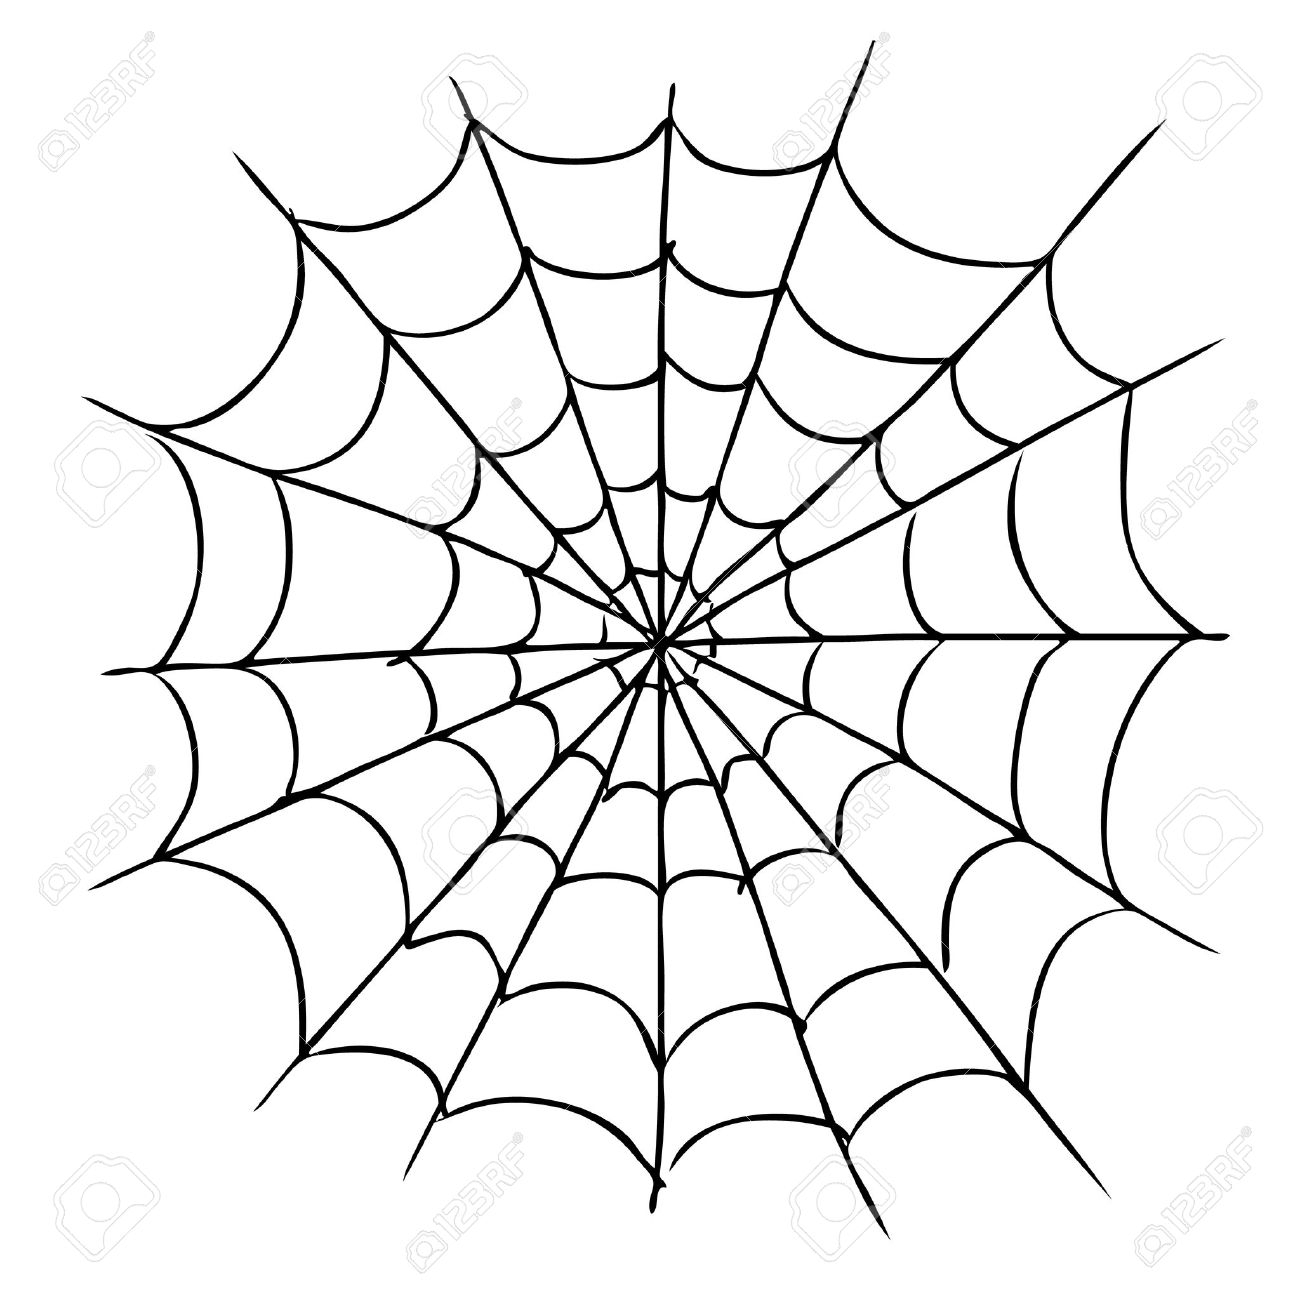 1300x1300 Drawing Of Spider Web How To Draw A Simple Spider Web